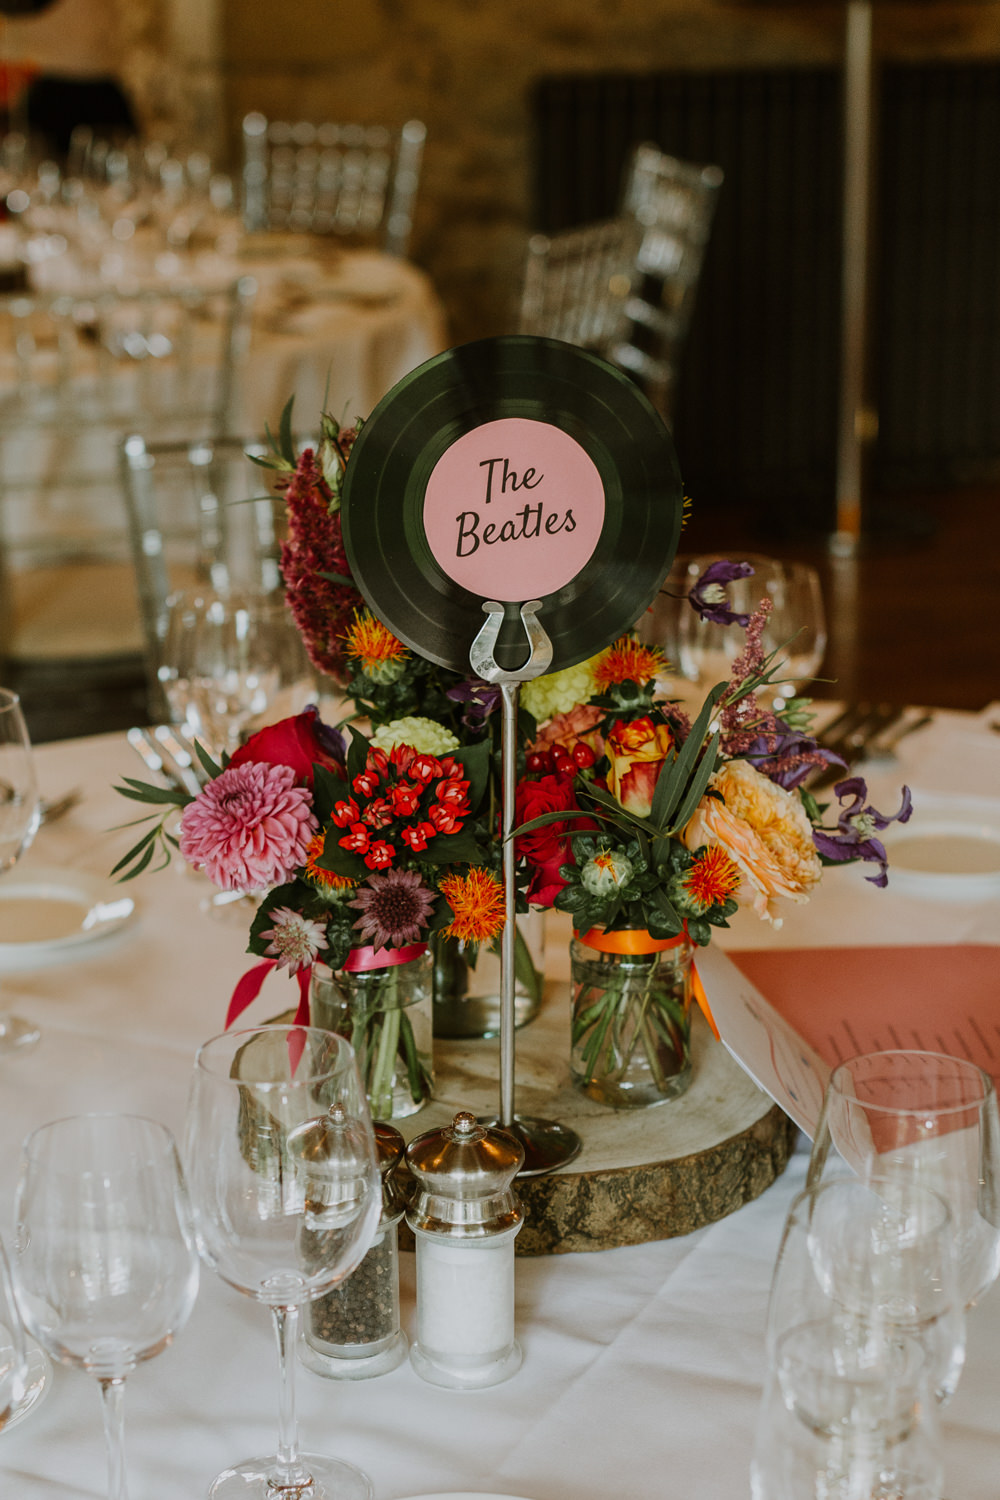 Music Records Vinyl Table Name Centrepiece Log Table Decor Flowers Notley Abbey Wedding Alexandra Jane Photography